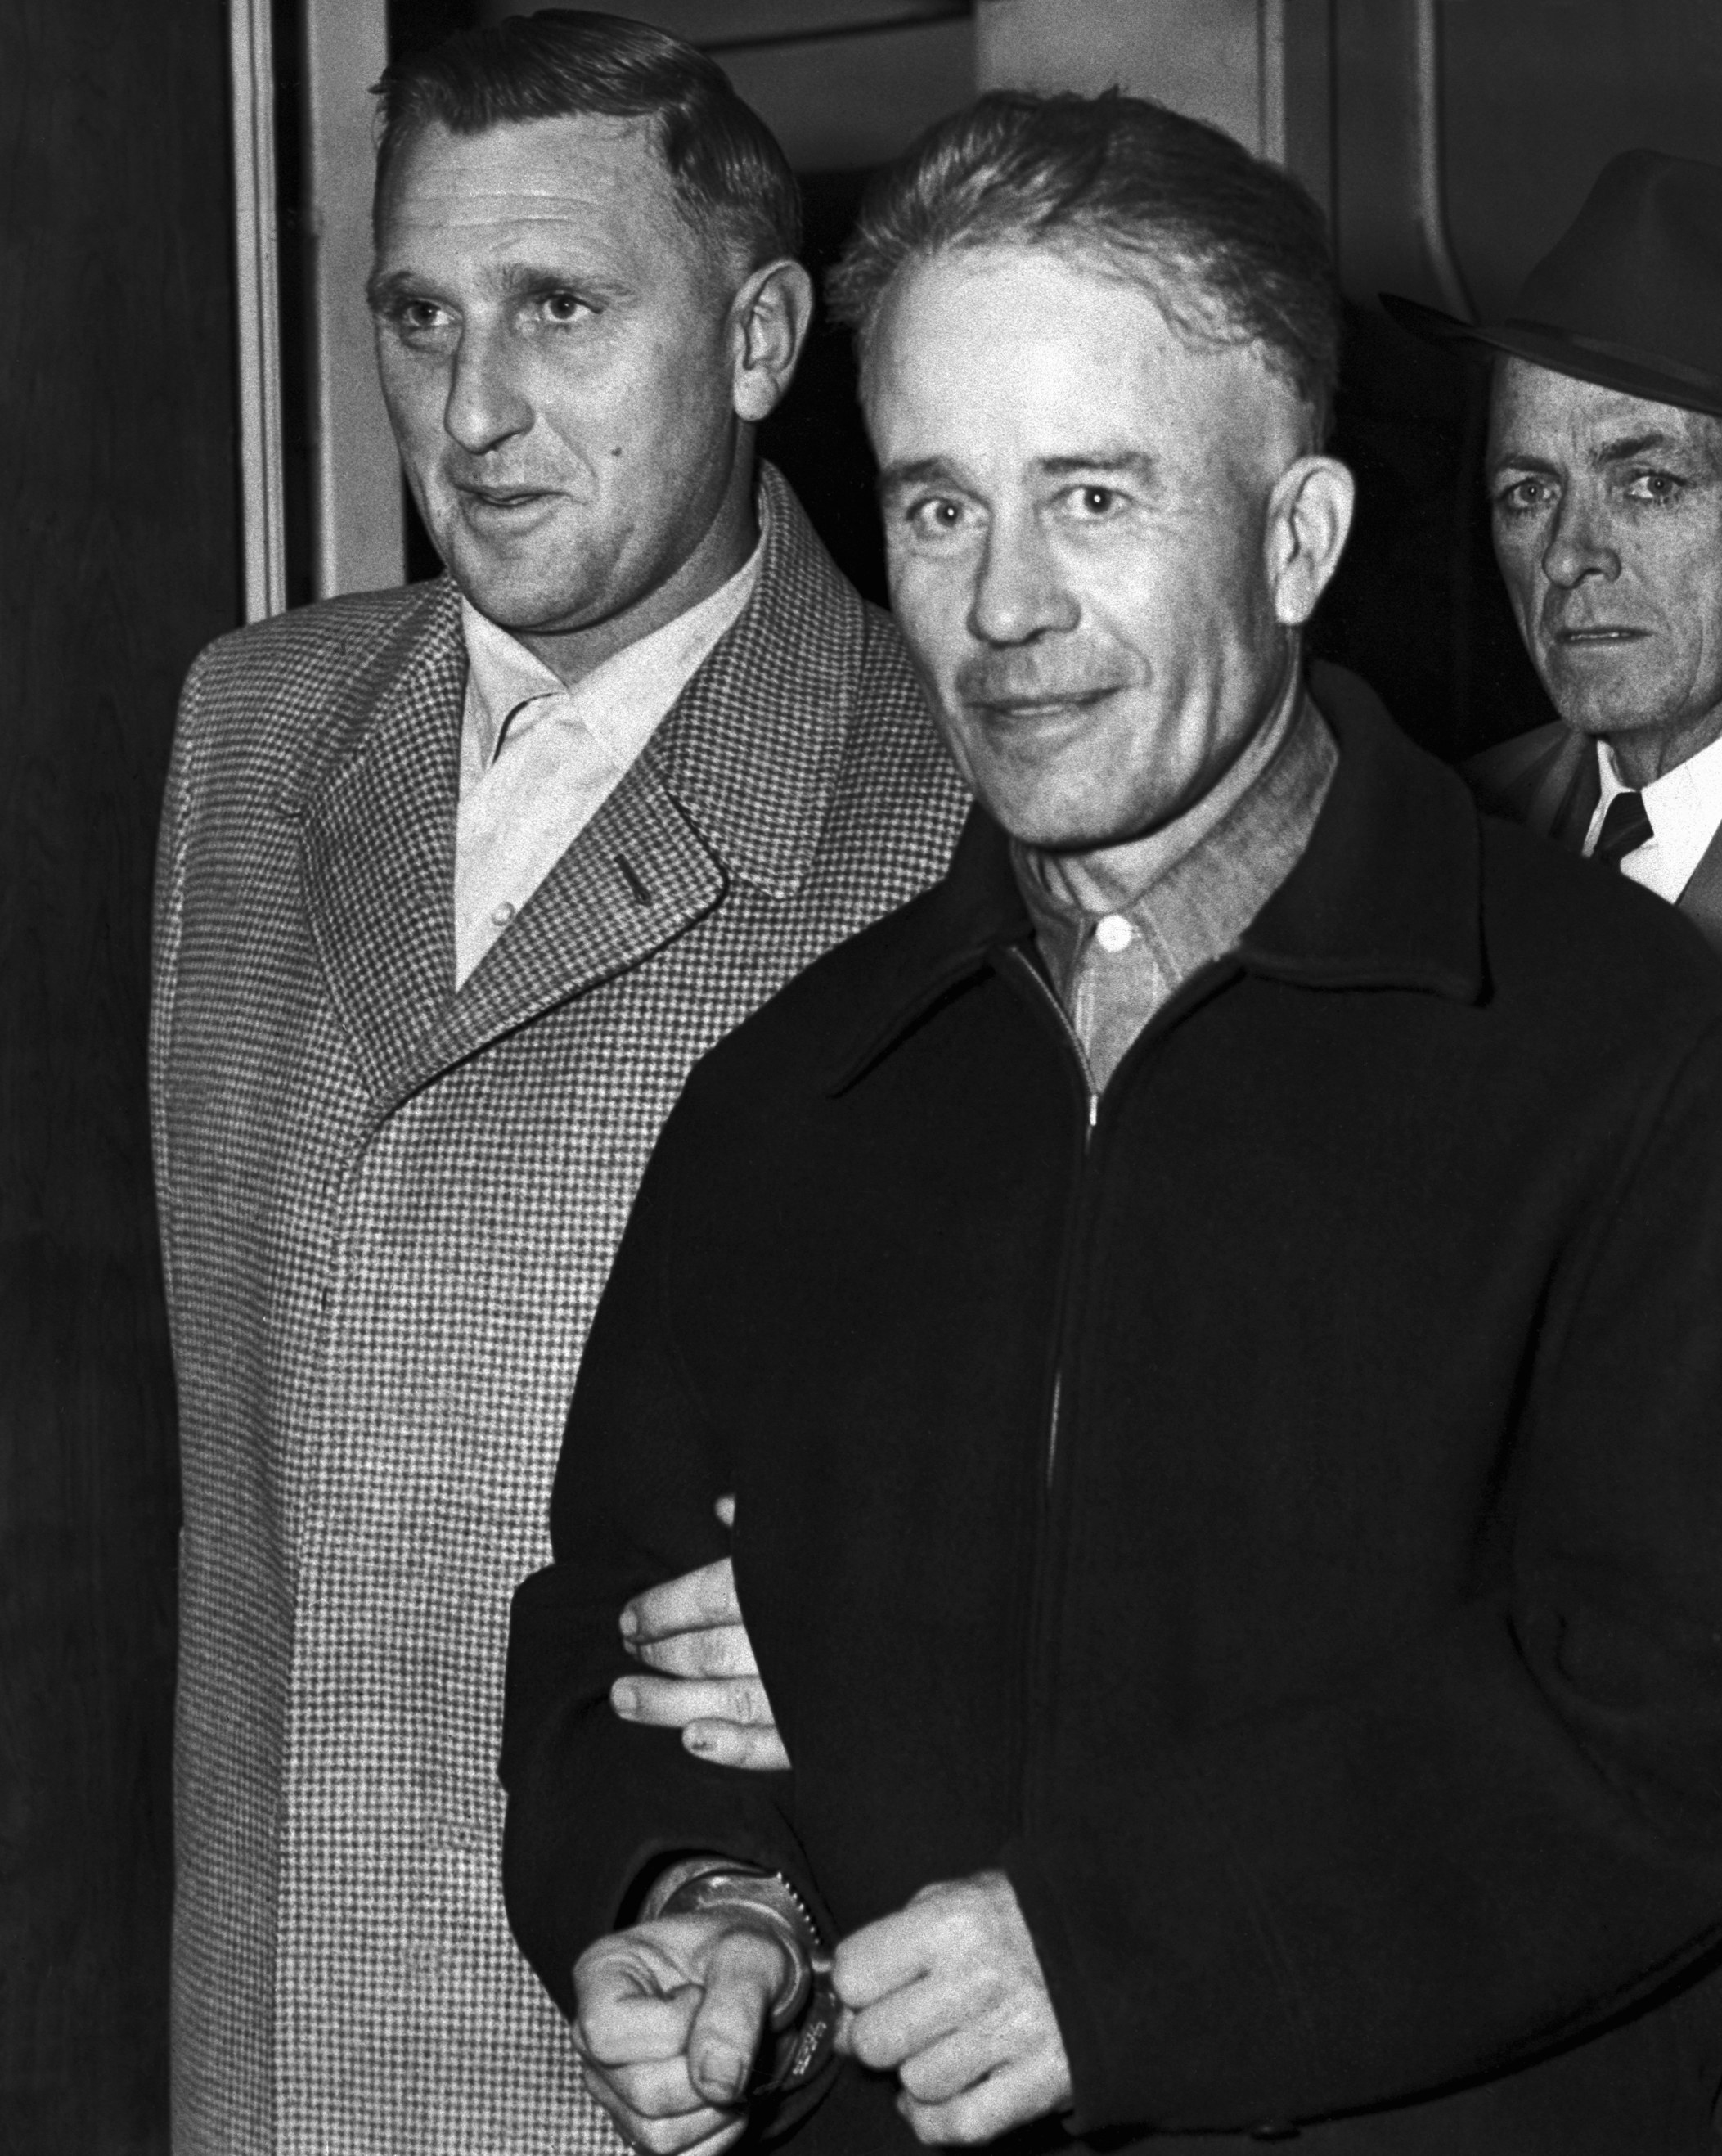 Ed Gein with a creepy smile on his face as he's being escorted by police in handcuffs